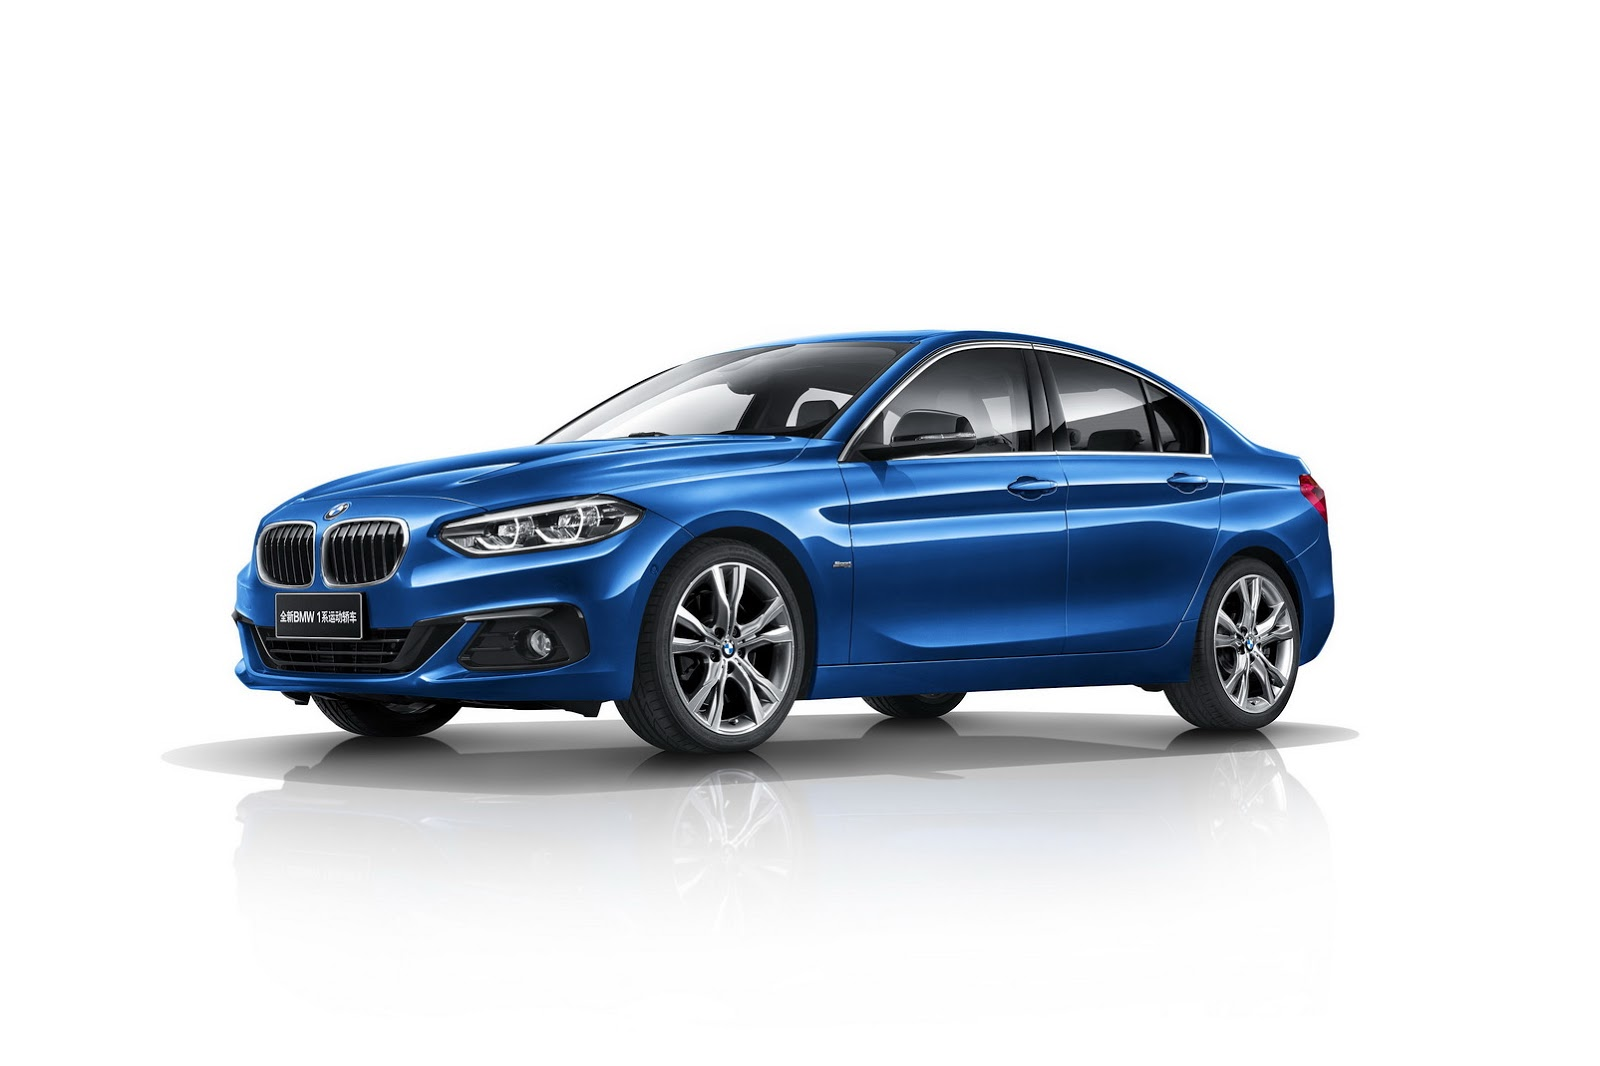 bmw-1series-sedan-detailed-8.jpg